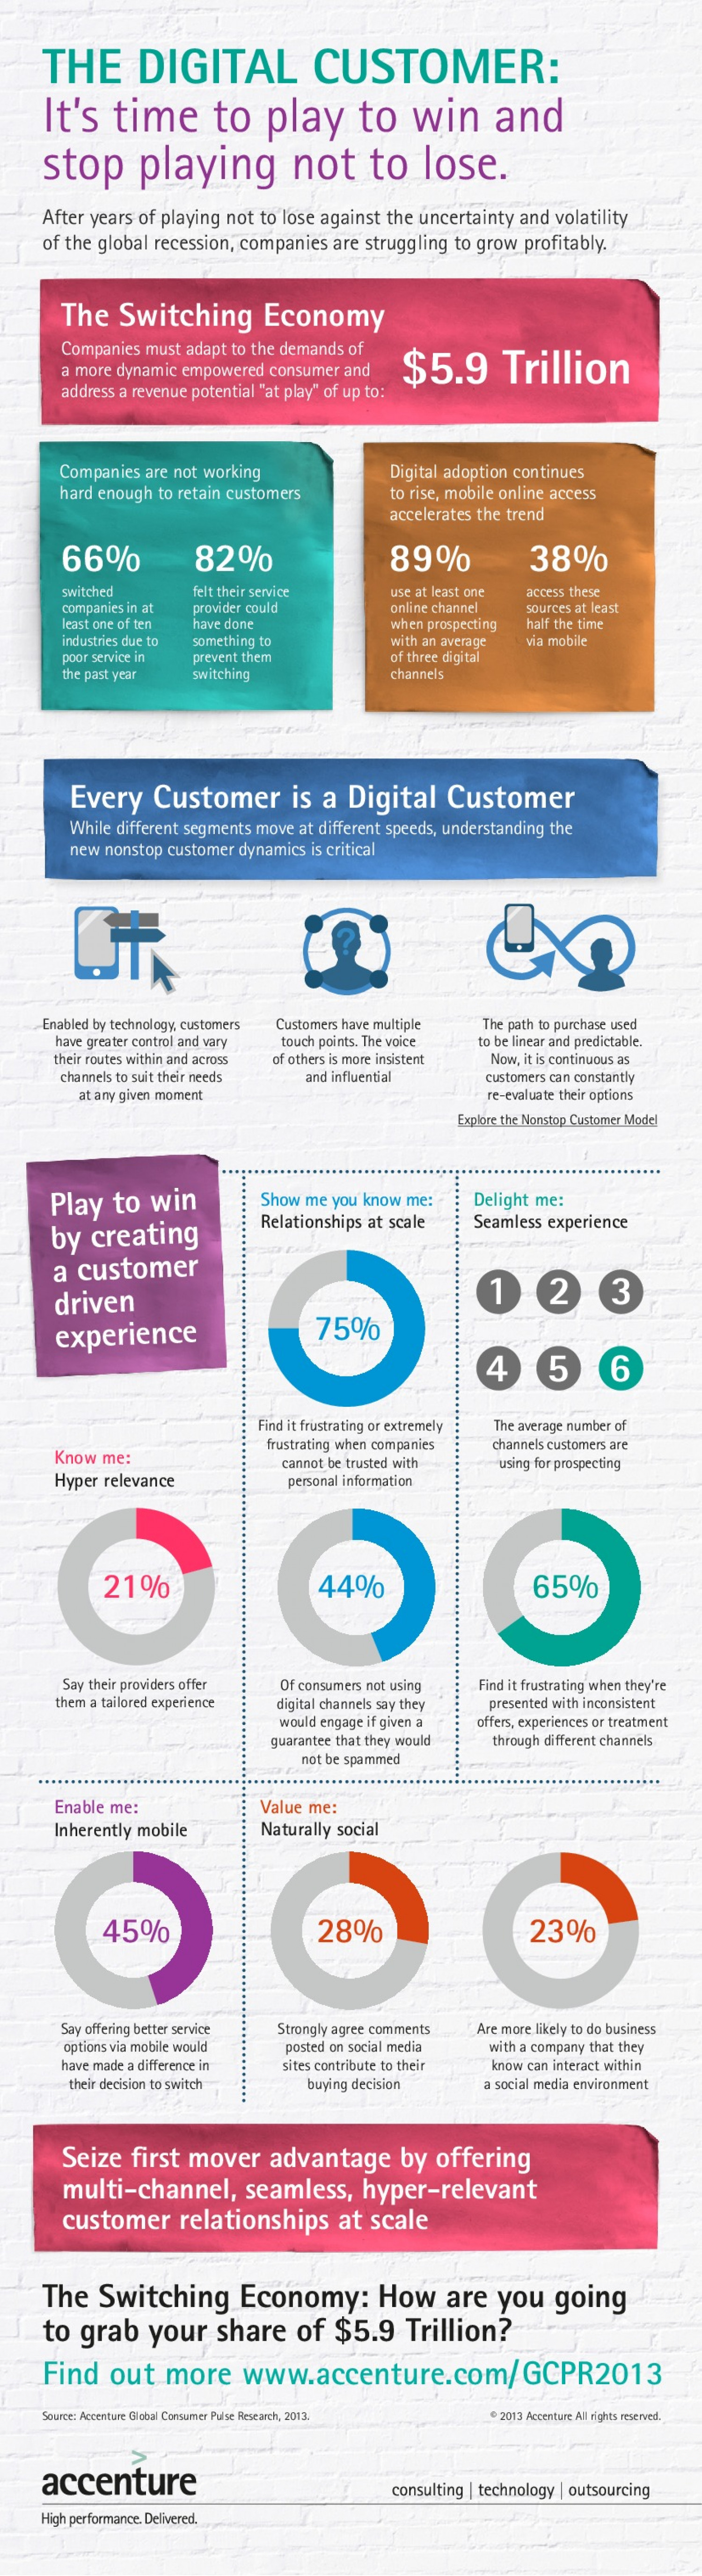 The Digital Customer: It's time to play to win and stop playing not to lose Infographic